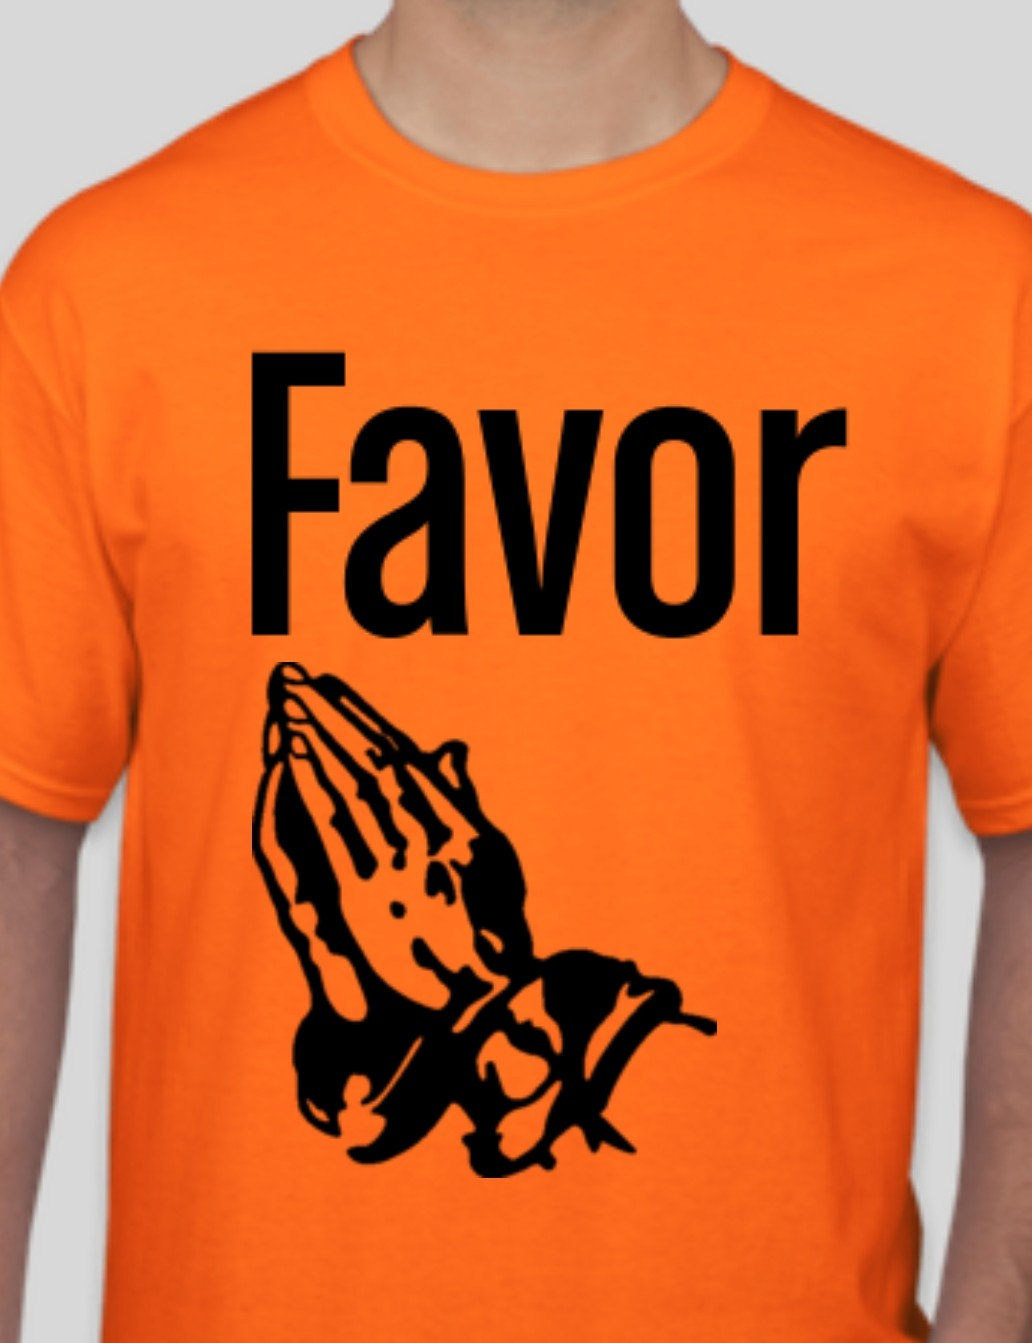 Favor Safety Orange T-shirt